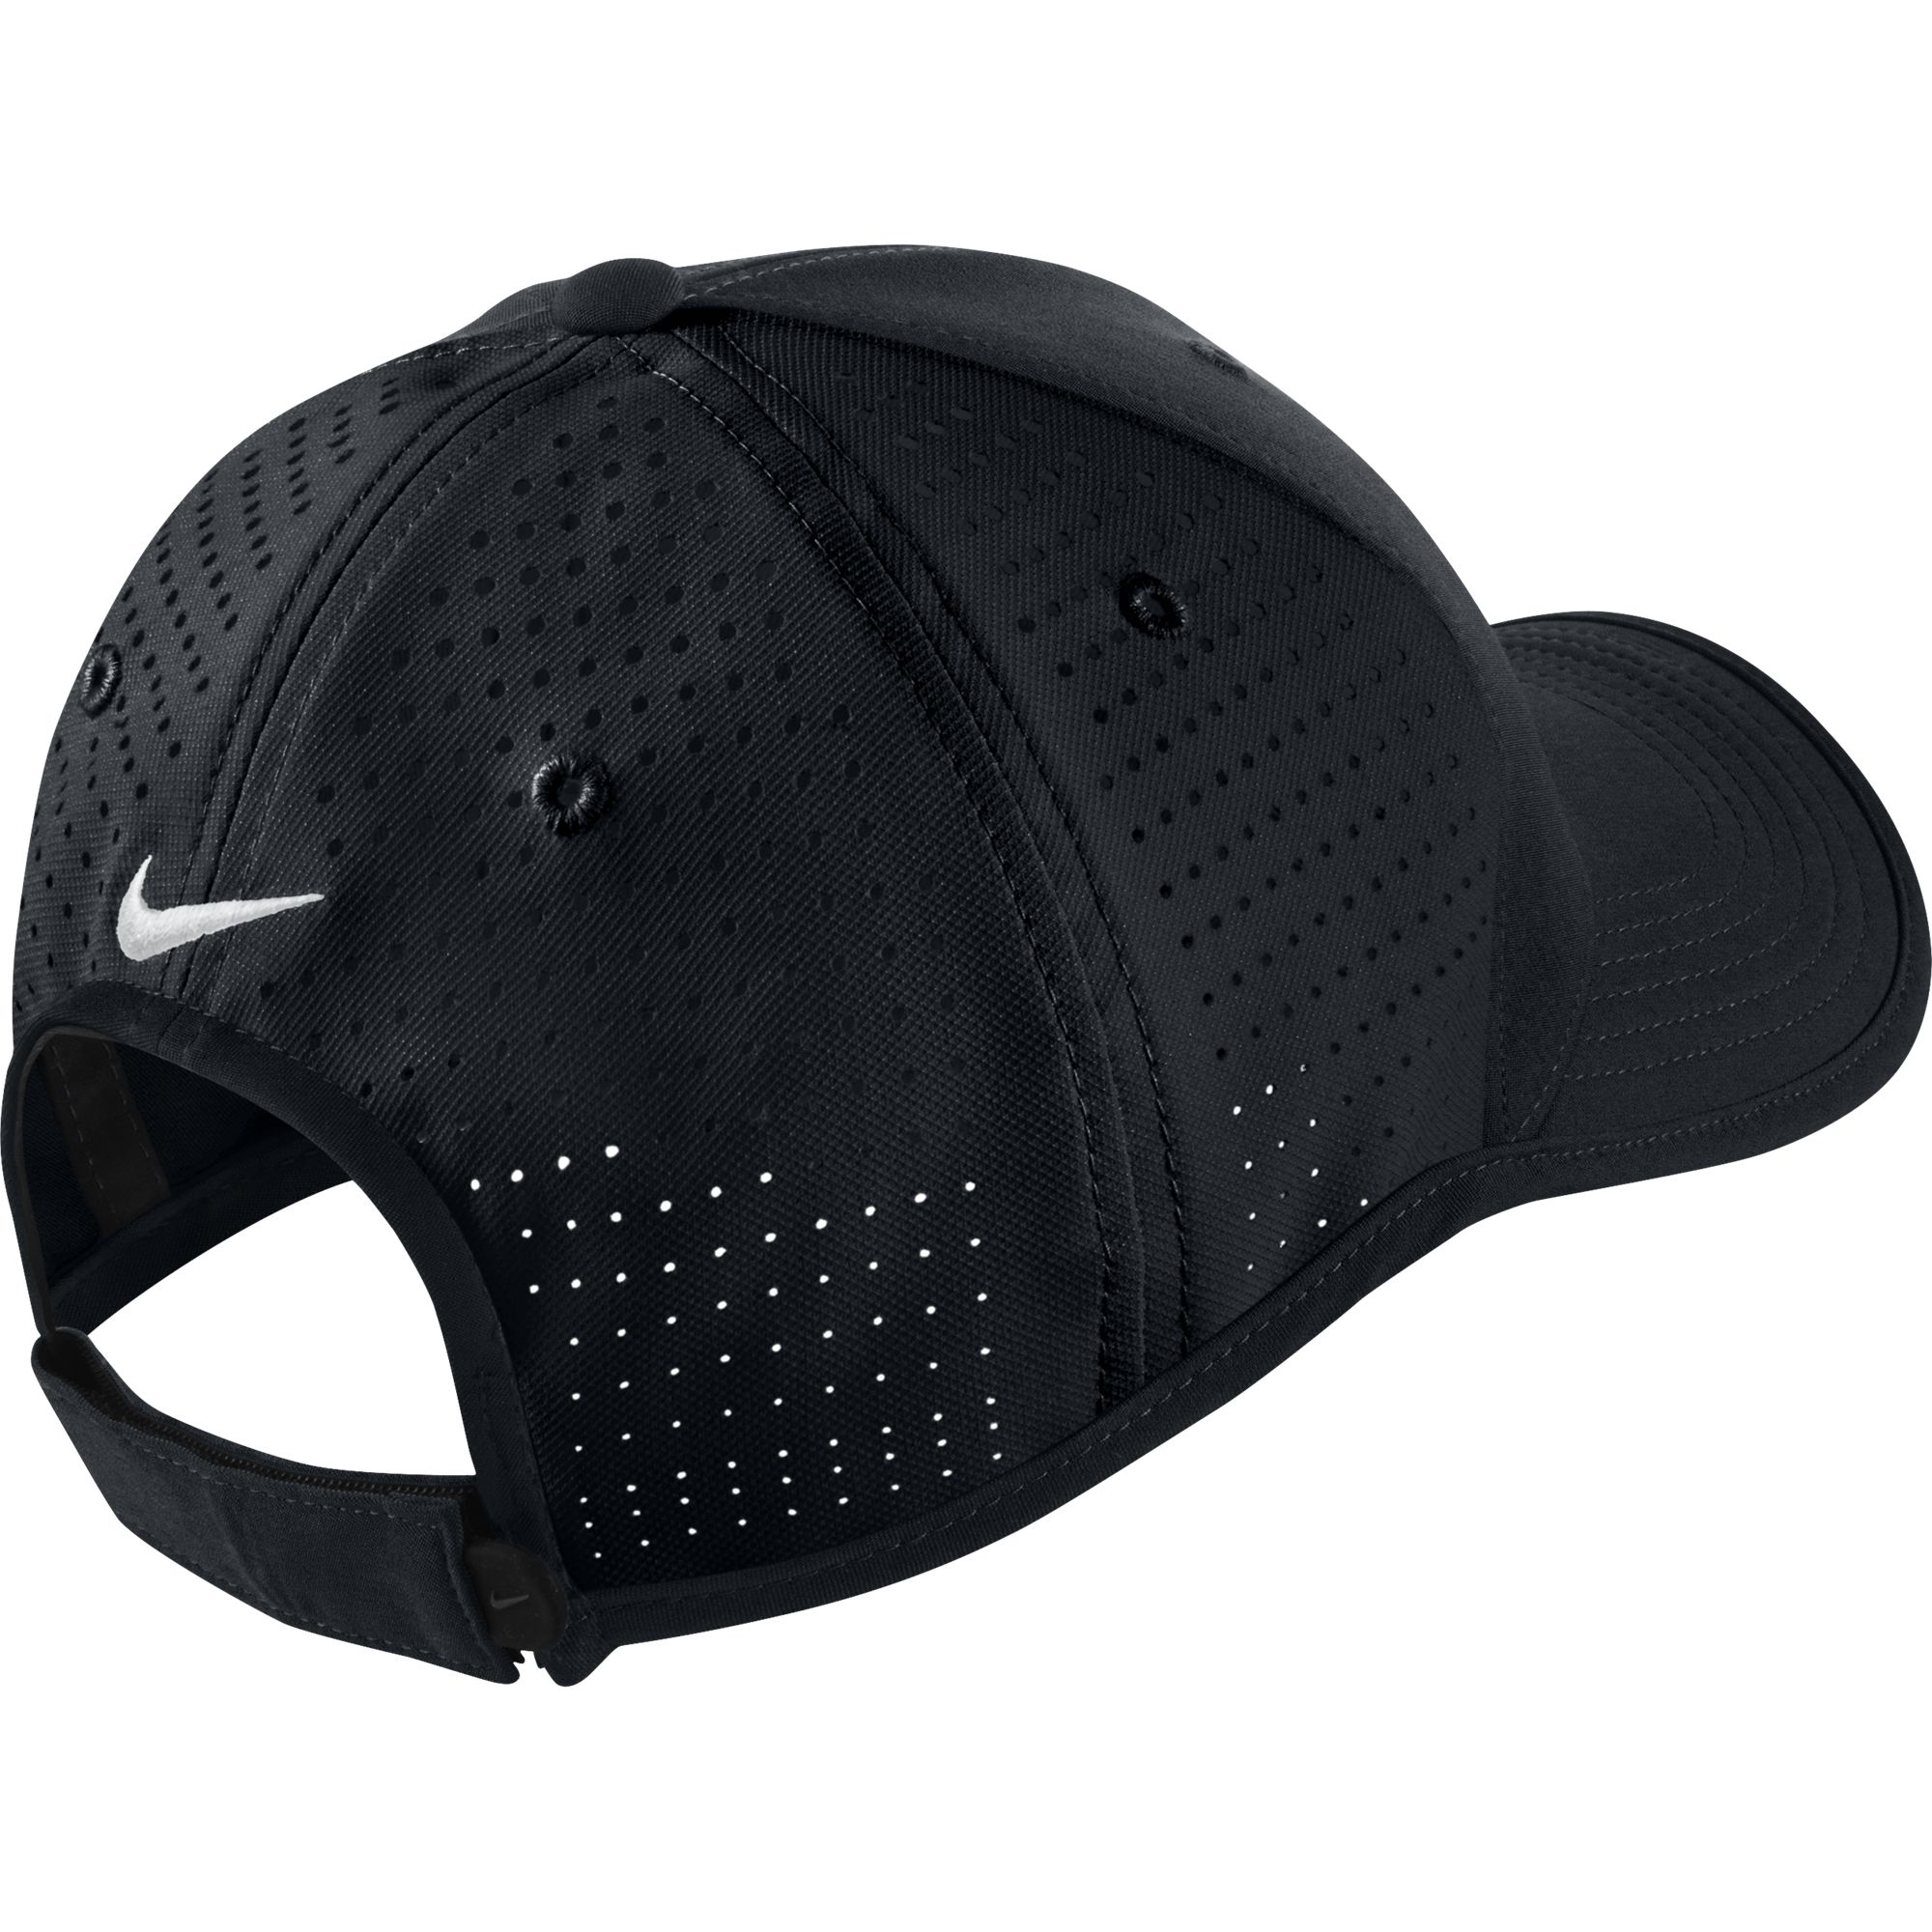 New Nike Golf 2016 TW Tiger Woods Ultralight Tour Adjustable Cap Hat ... 12697a8783a